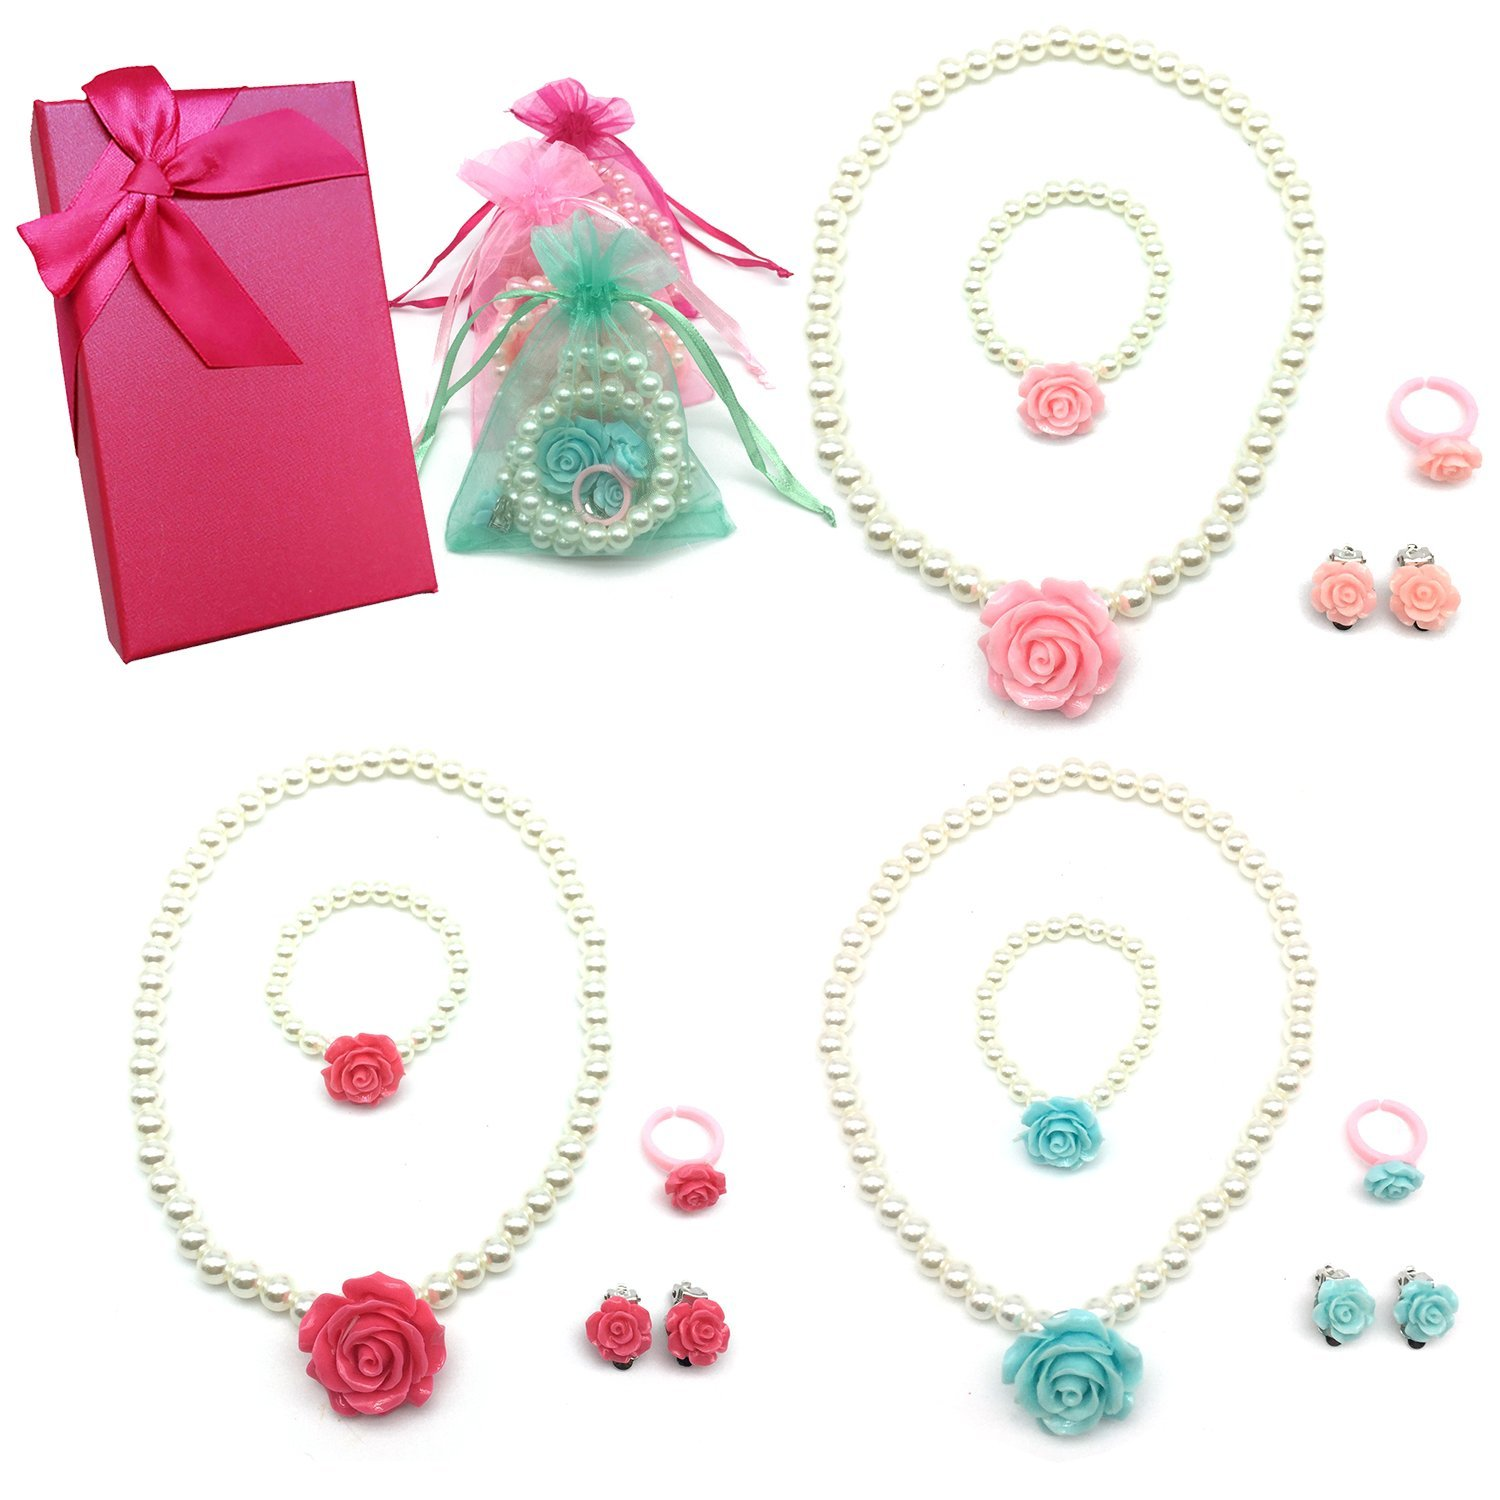 Elesa Miracle Girl Party Favor Pretend Play Princess Rose Pearl Jewelry Value Set-Necklace, Bracelet, Earrings, Ring, Pink, red,Green by Elesa Miracle